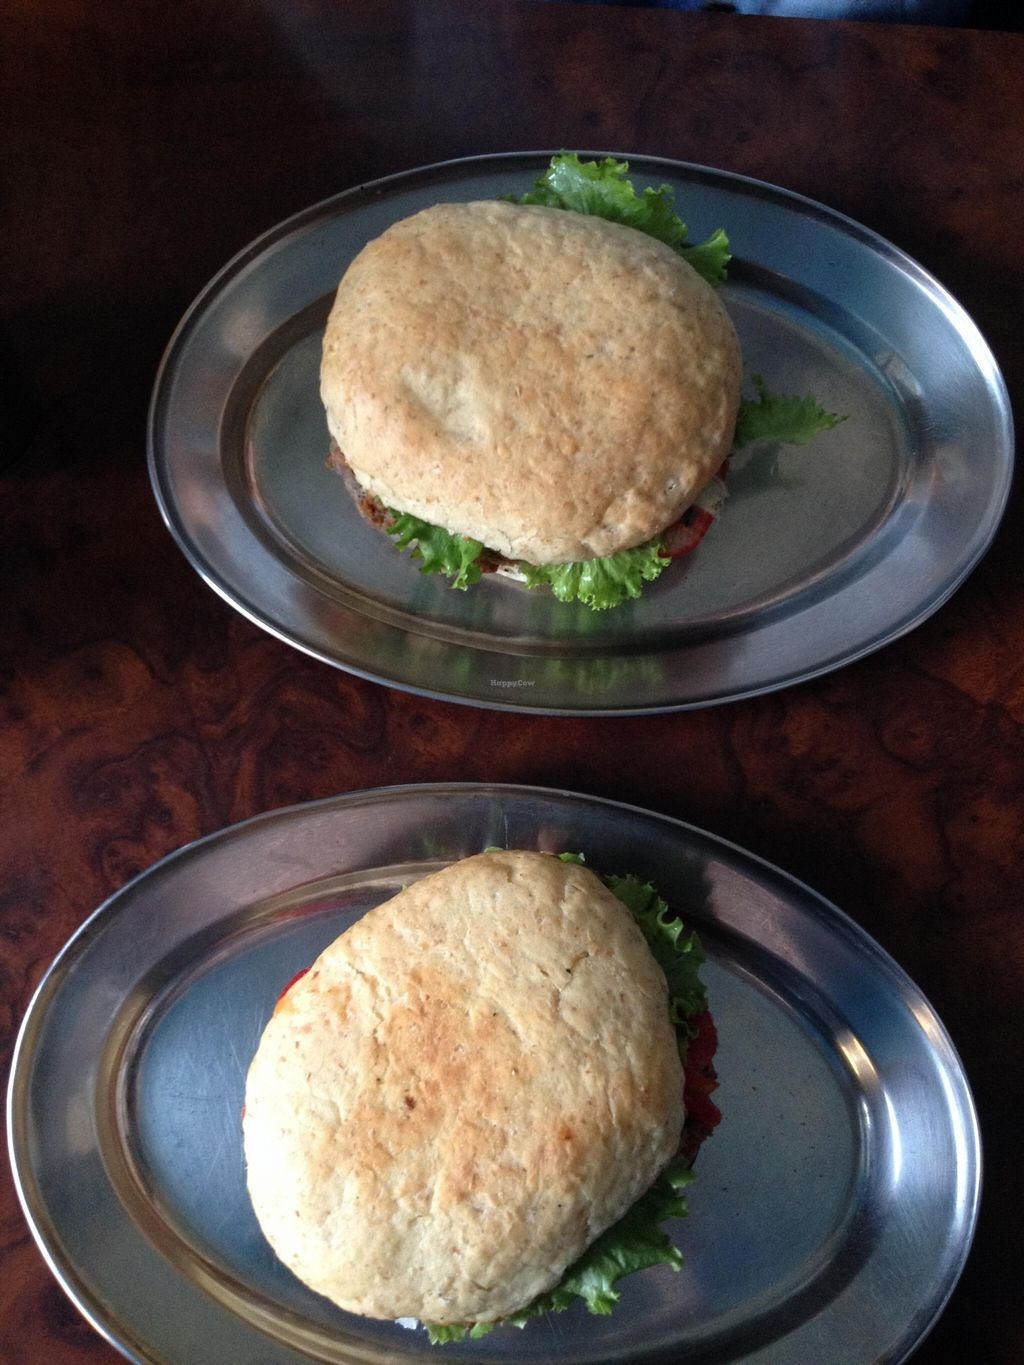 """Photo of CLOSED: Rastaburger - Wiracocha  by <a href=""""/members/profile/alexisnao"""">alexisnao</a> <br/>Vegan hamburgers <br/> September 26, 2015  - <a href='/contact/abuse/image/47227/119263'>Report</a>"""